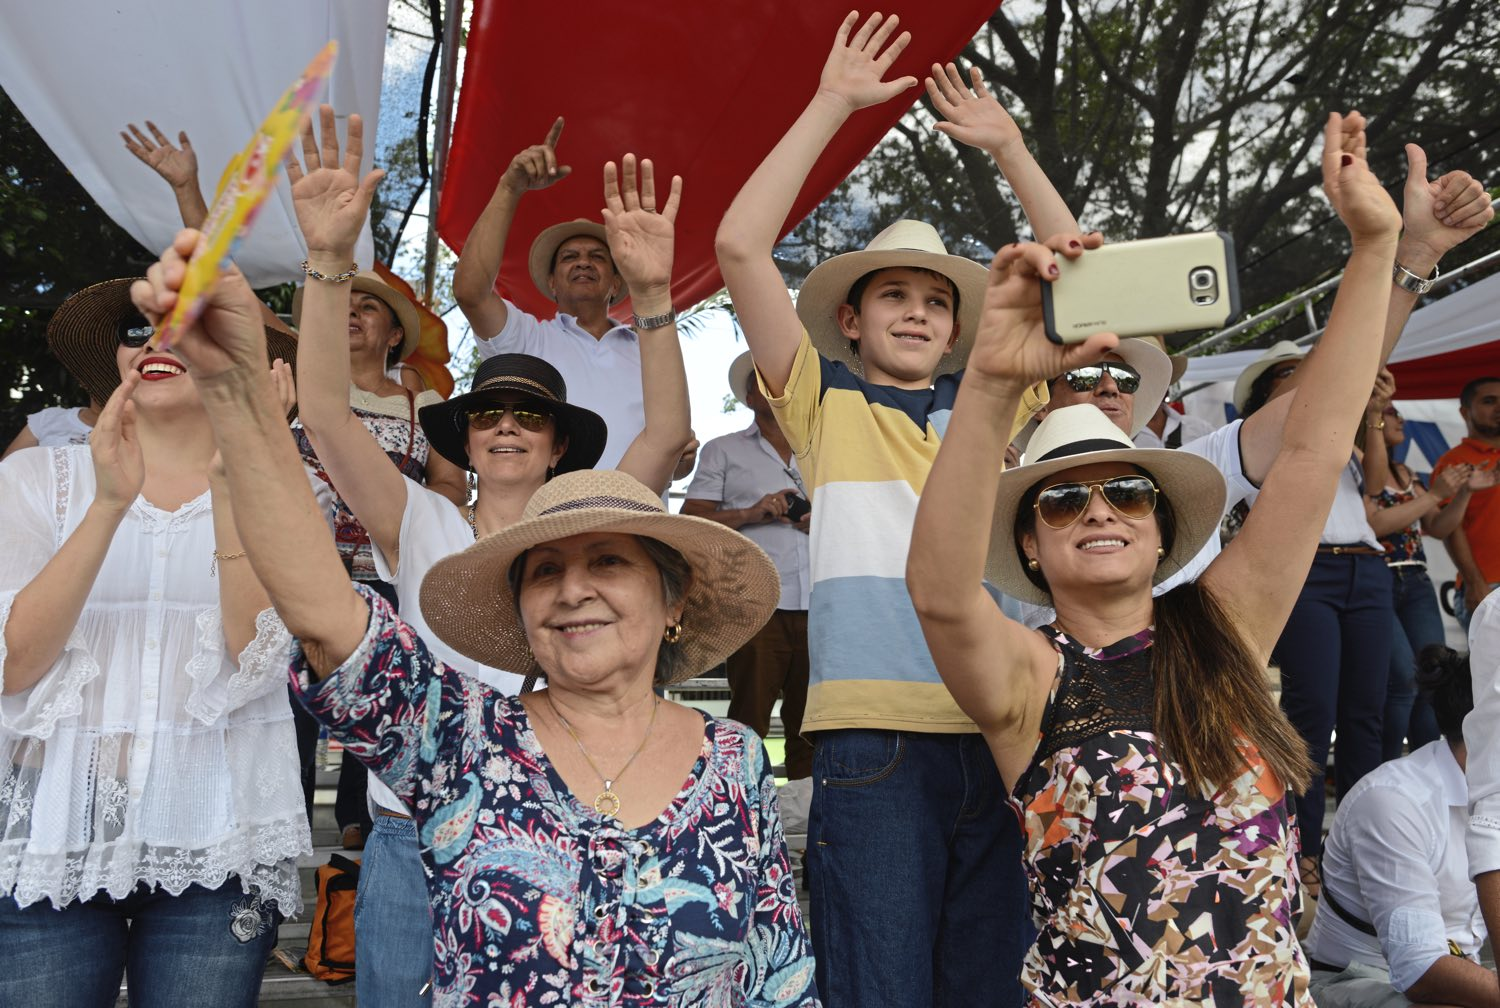 Thousands of fans cheer Monday Aug. 7, 2017, during the 60th anniversary of the flower festival in Medellin, Colombia. (Nate Guidry/Post-Gazette)